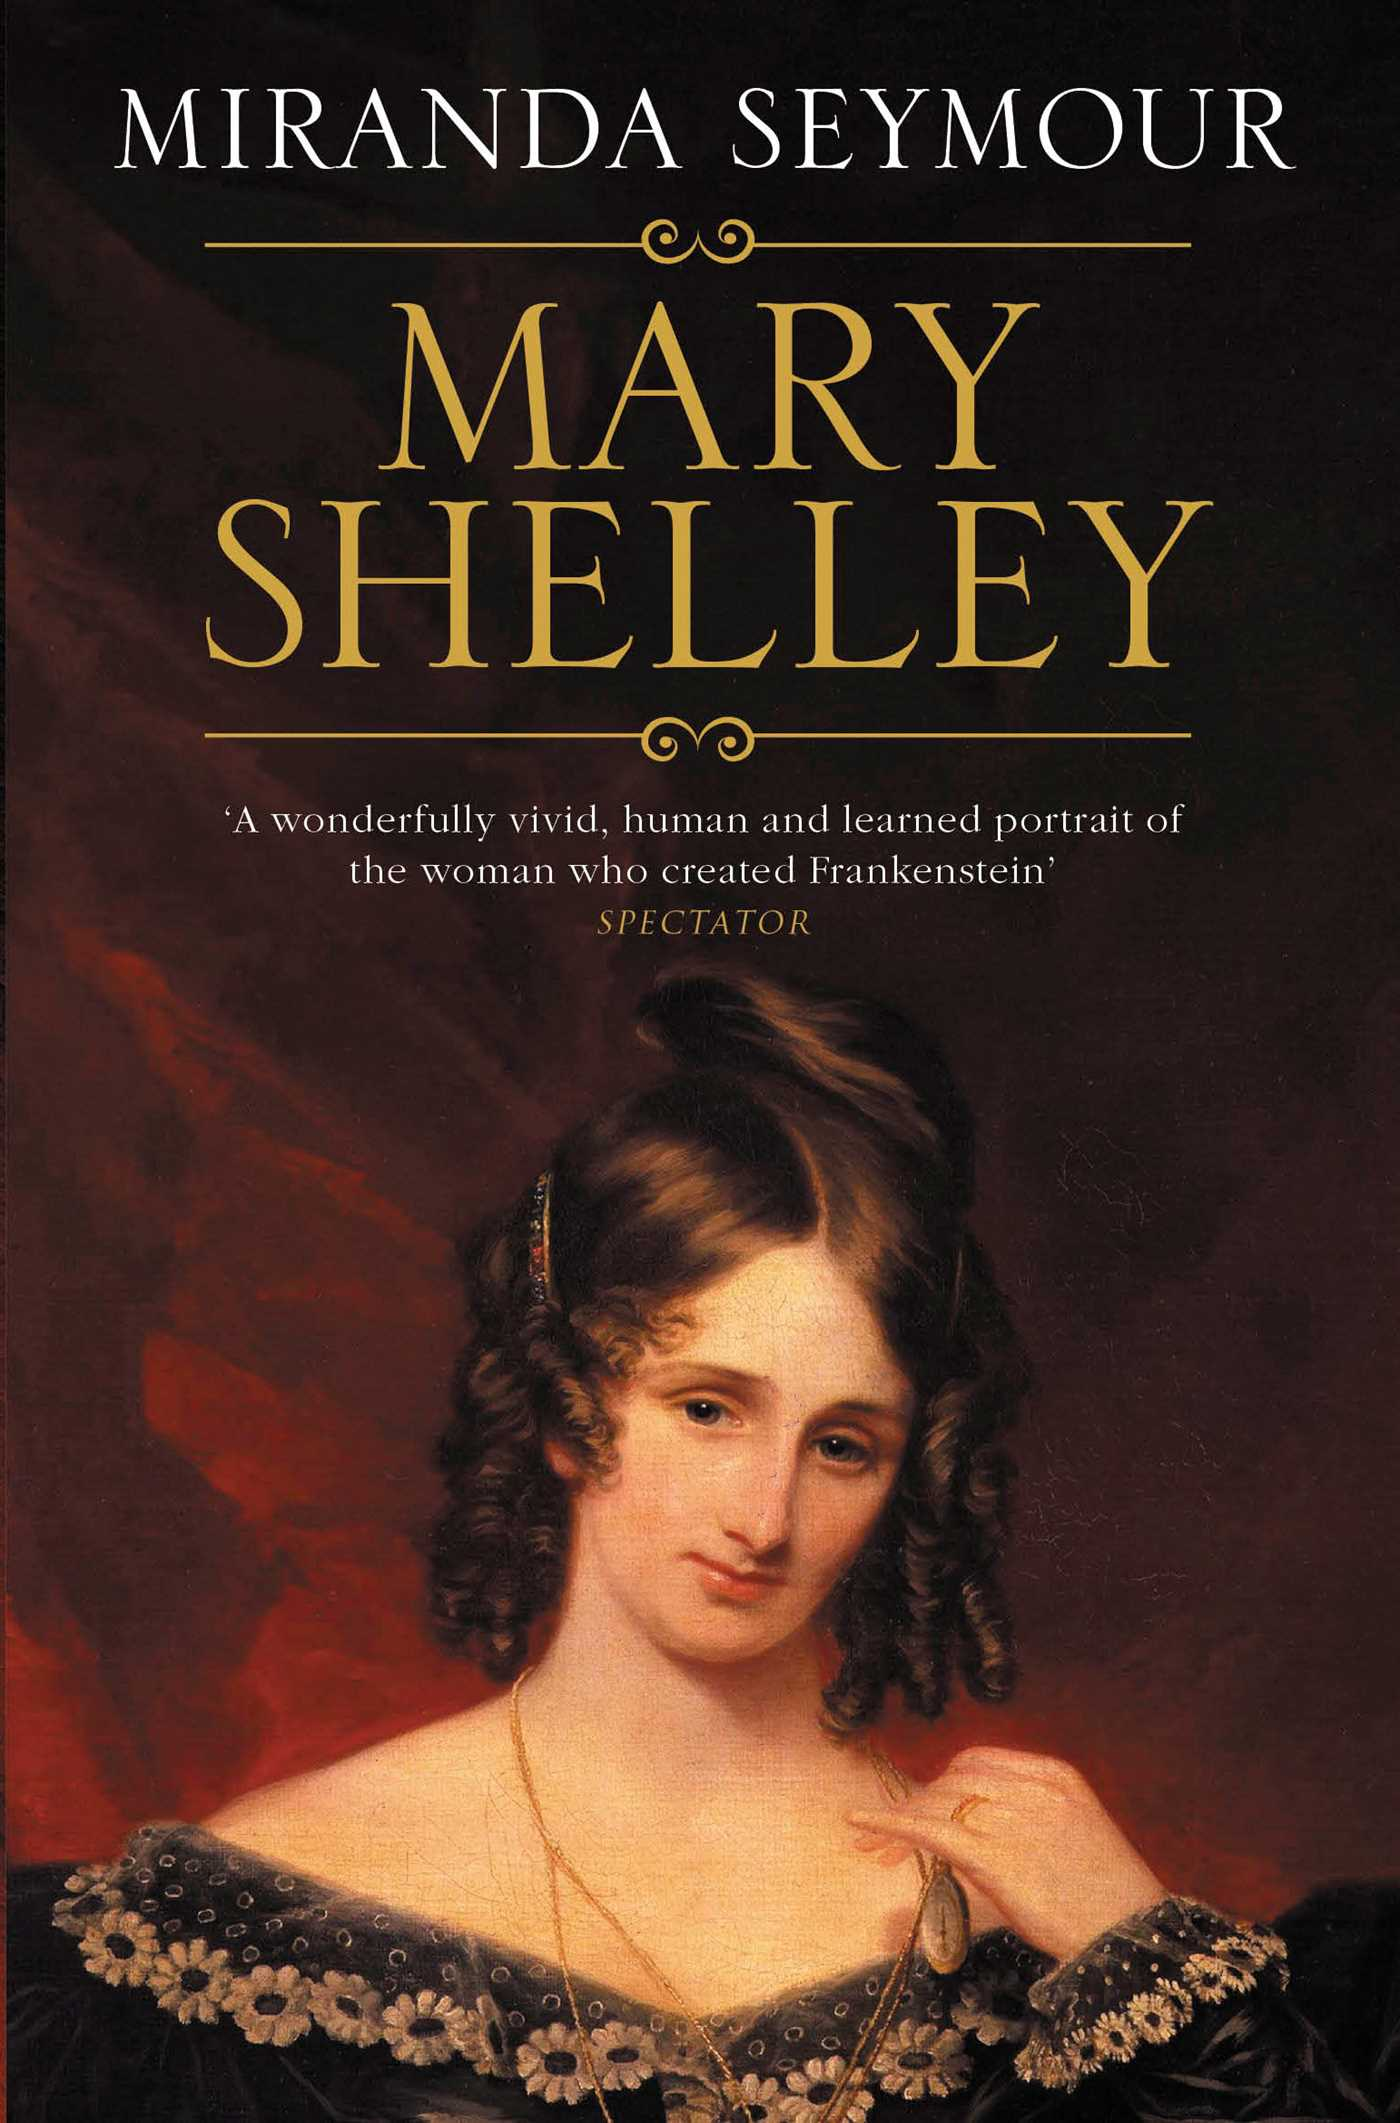 Mary Shelley   Book by Miranda Seymour   Official Publisher Page   Simon & Schuster UK